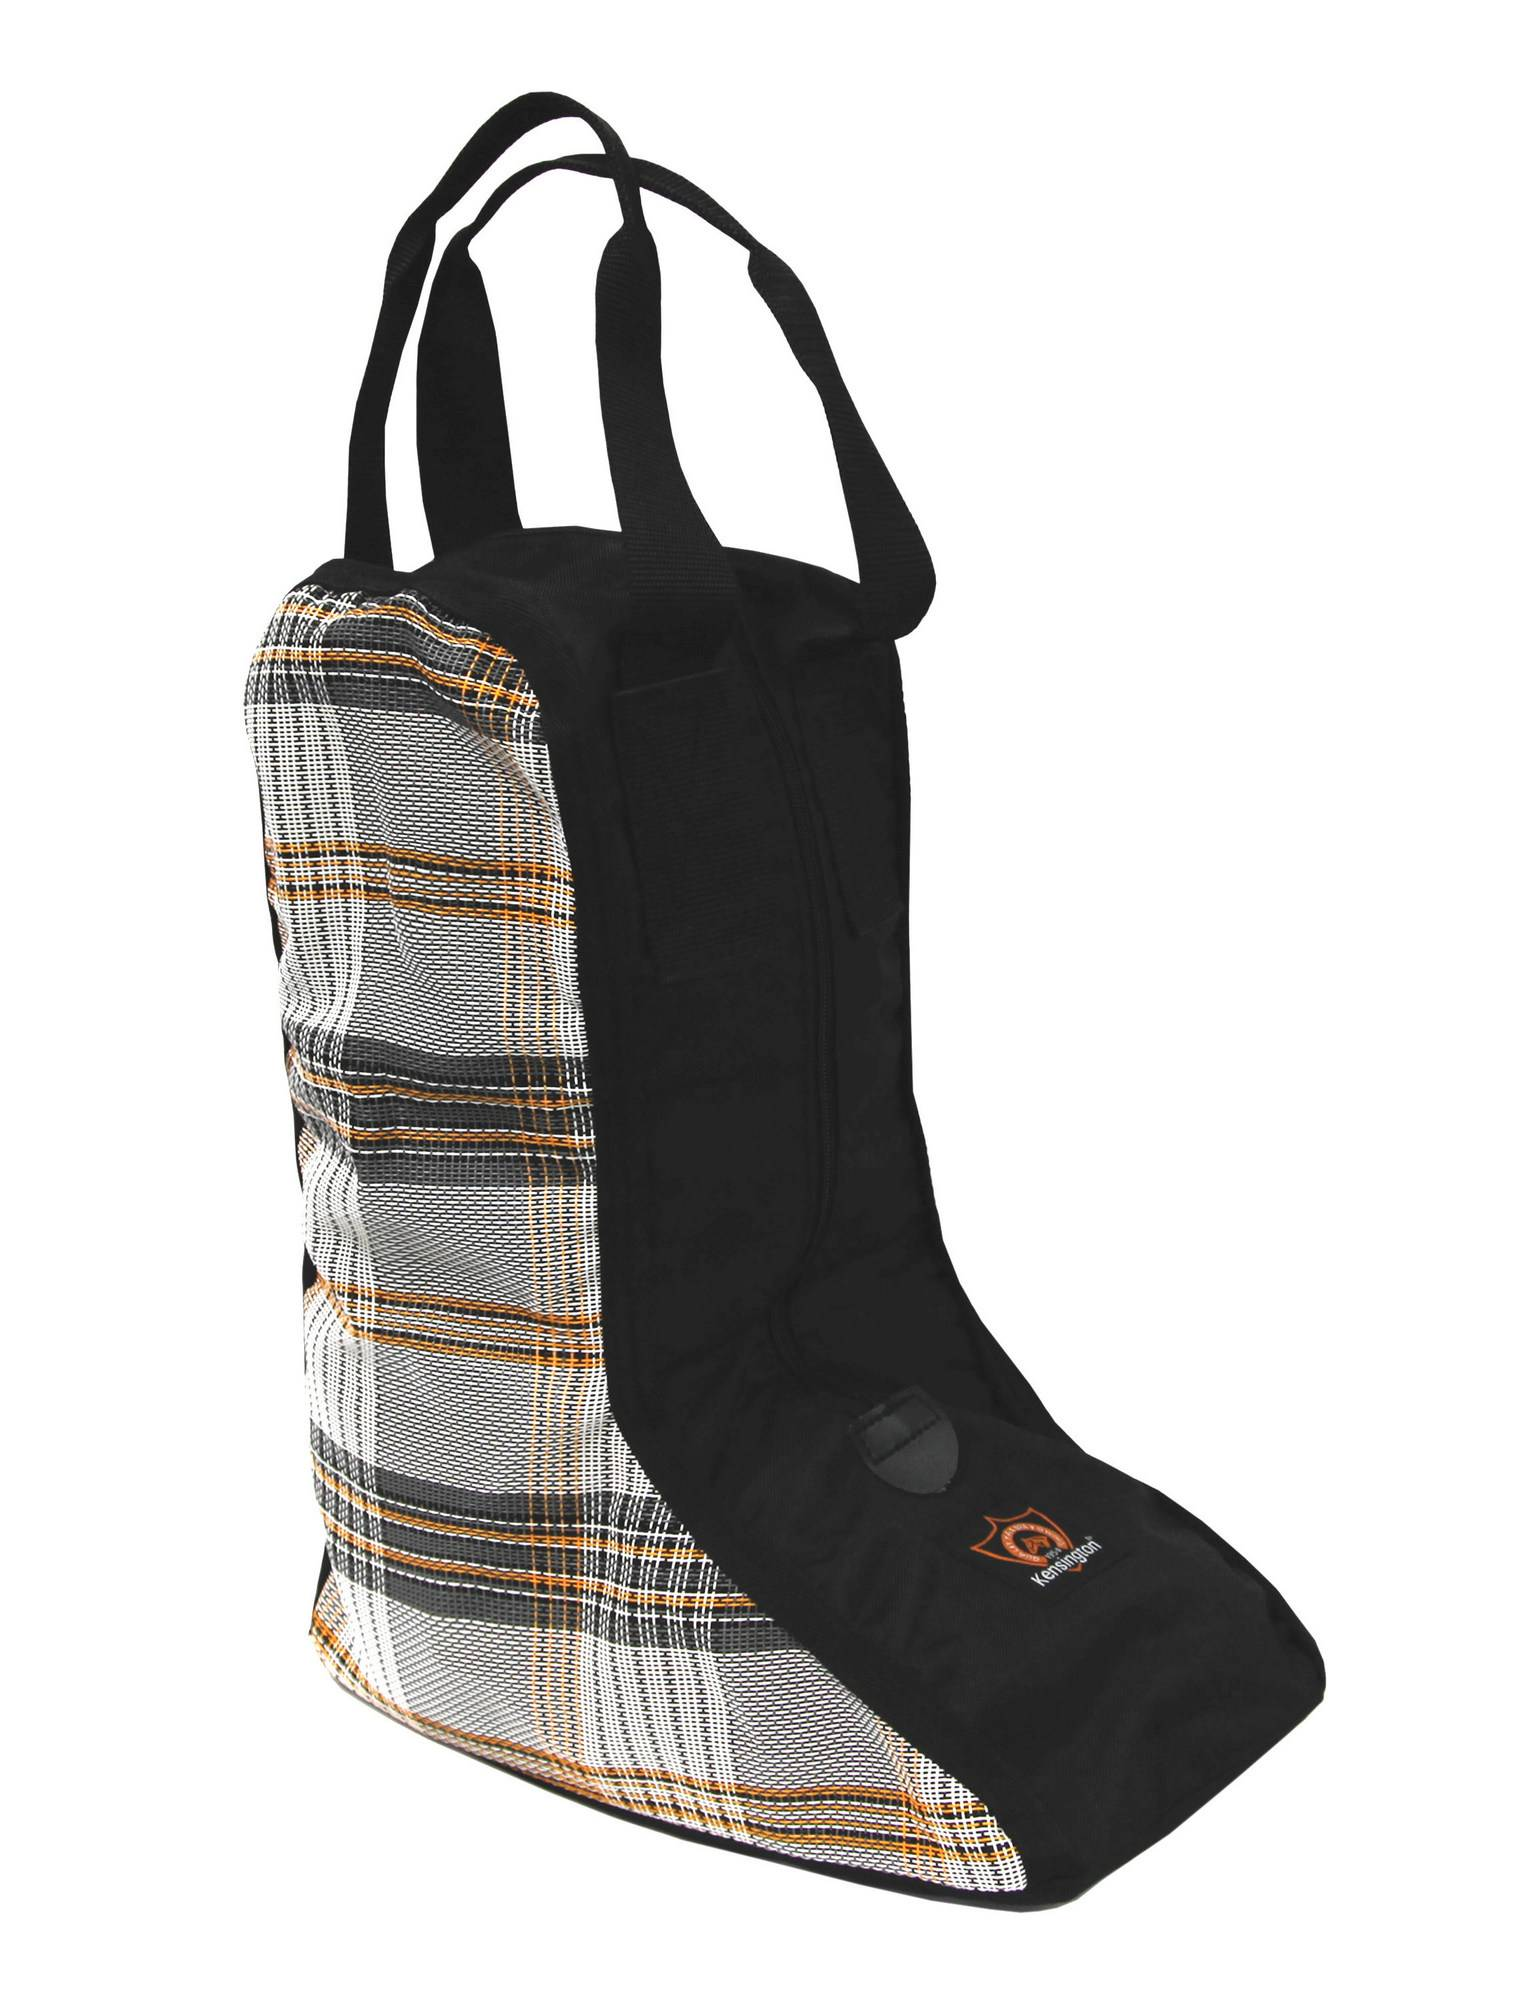 Kensington Roustabout Boot Bag